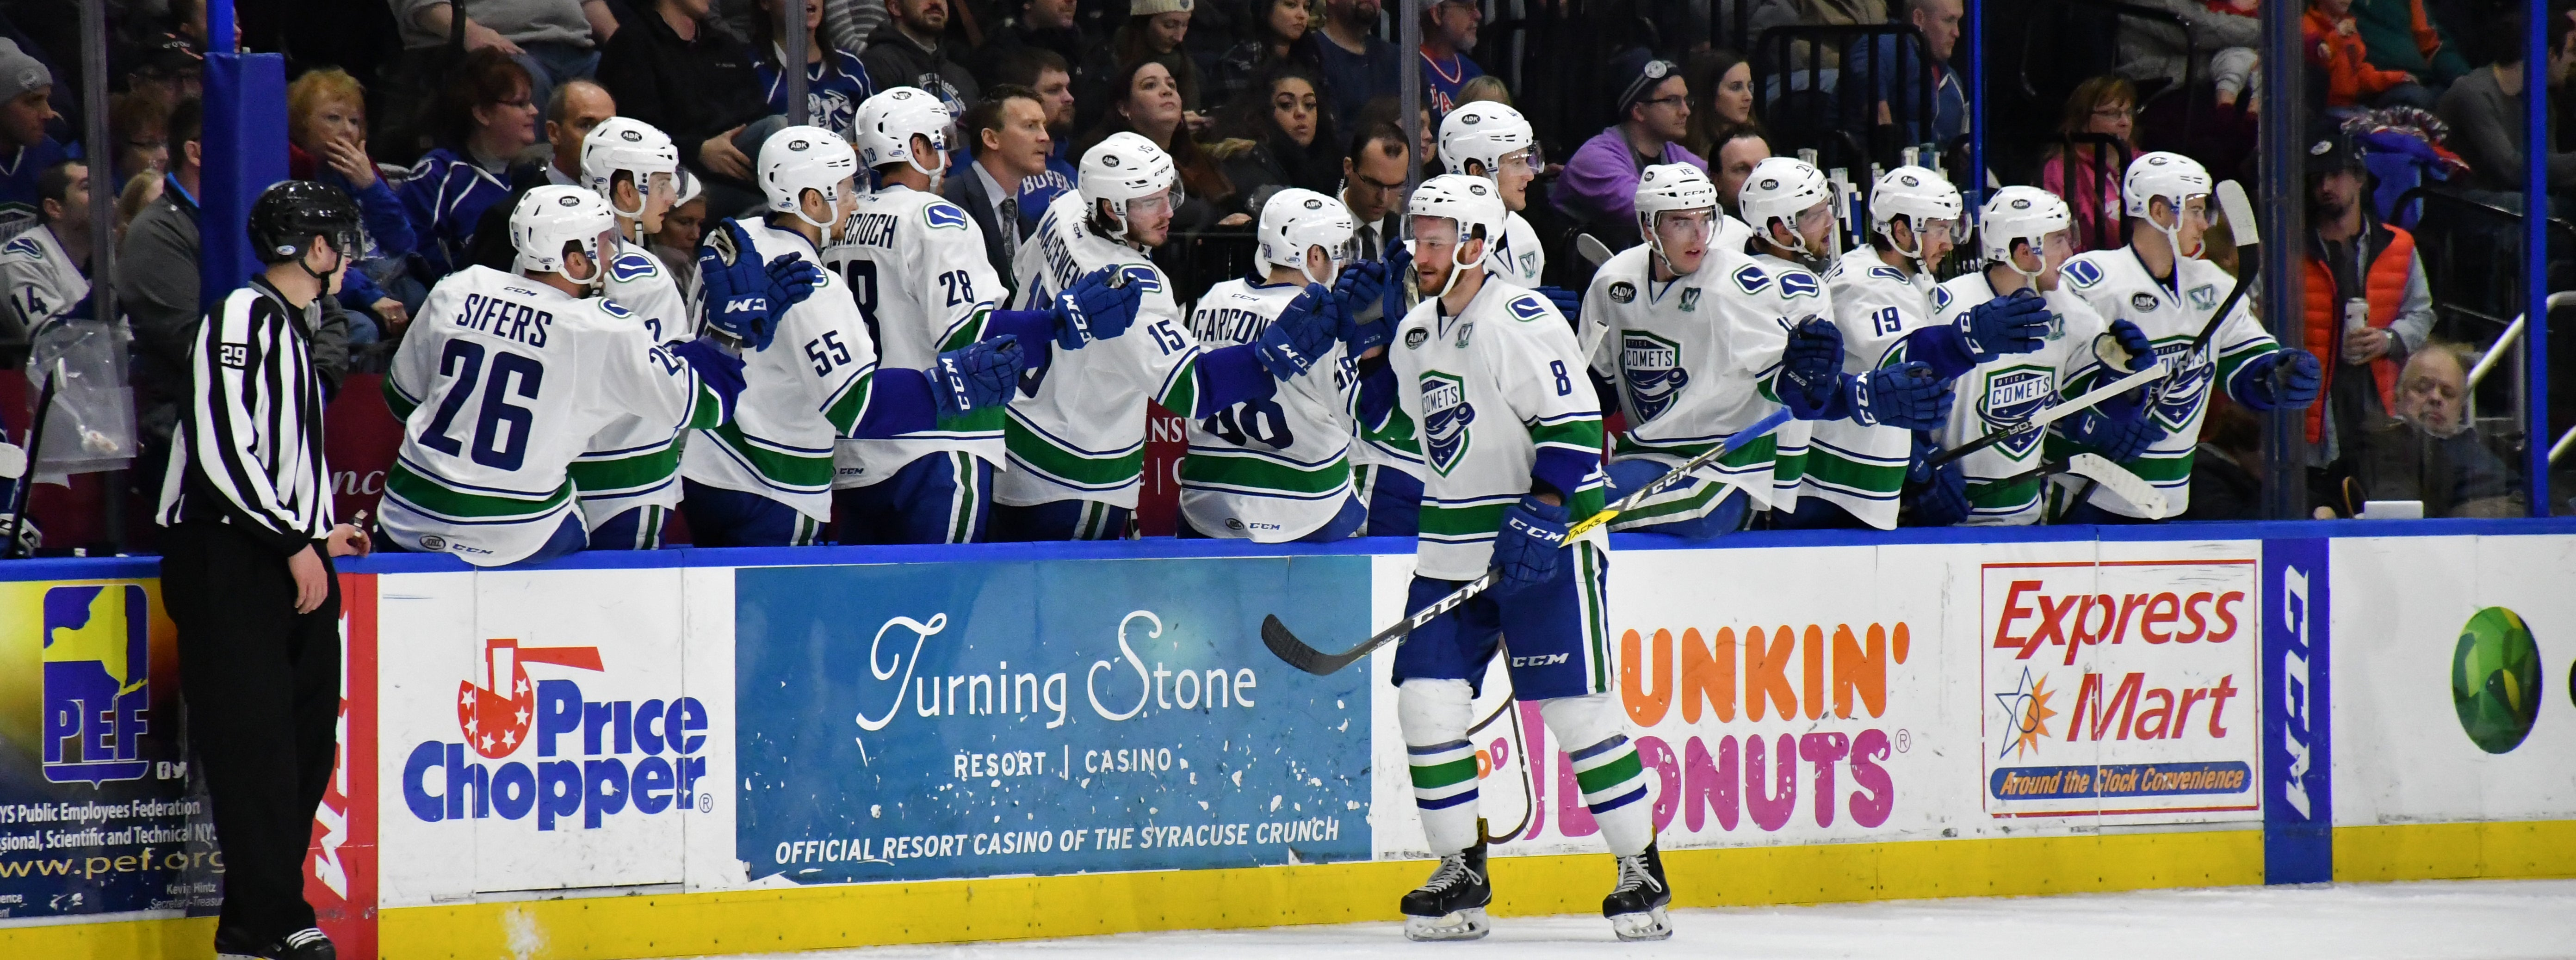 COMETS SCORE 4 UNANSWERED GOALS TO TOP CRUNCH